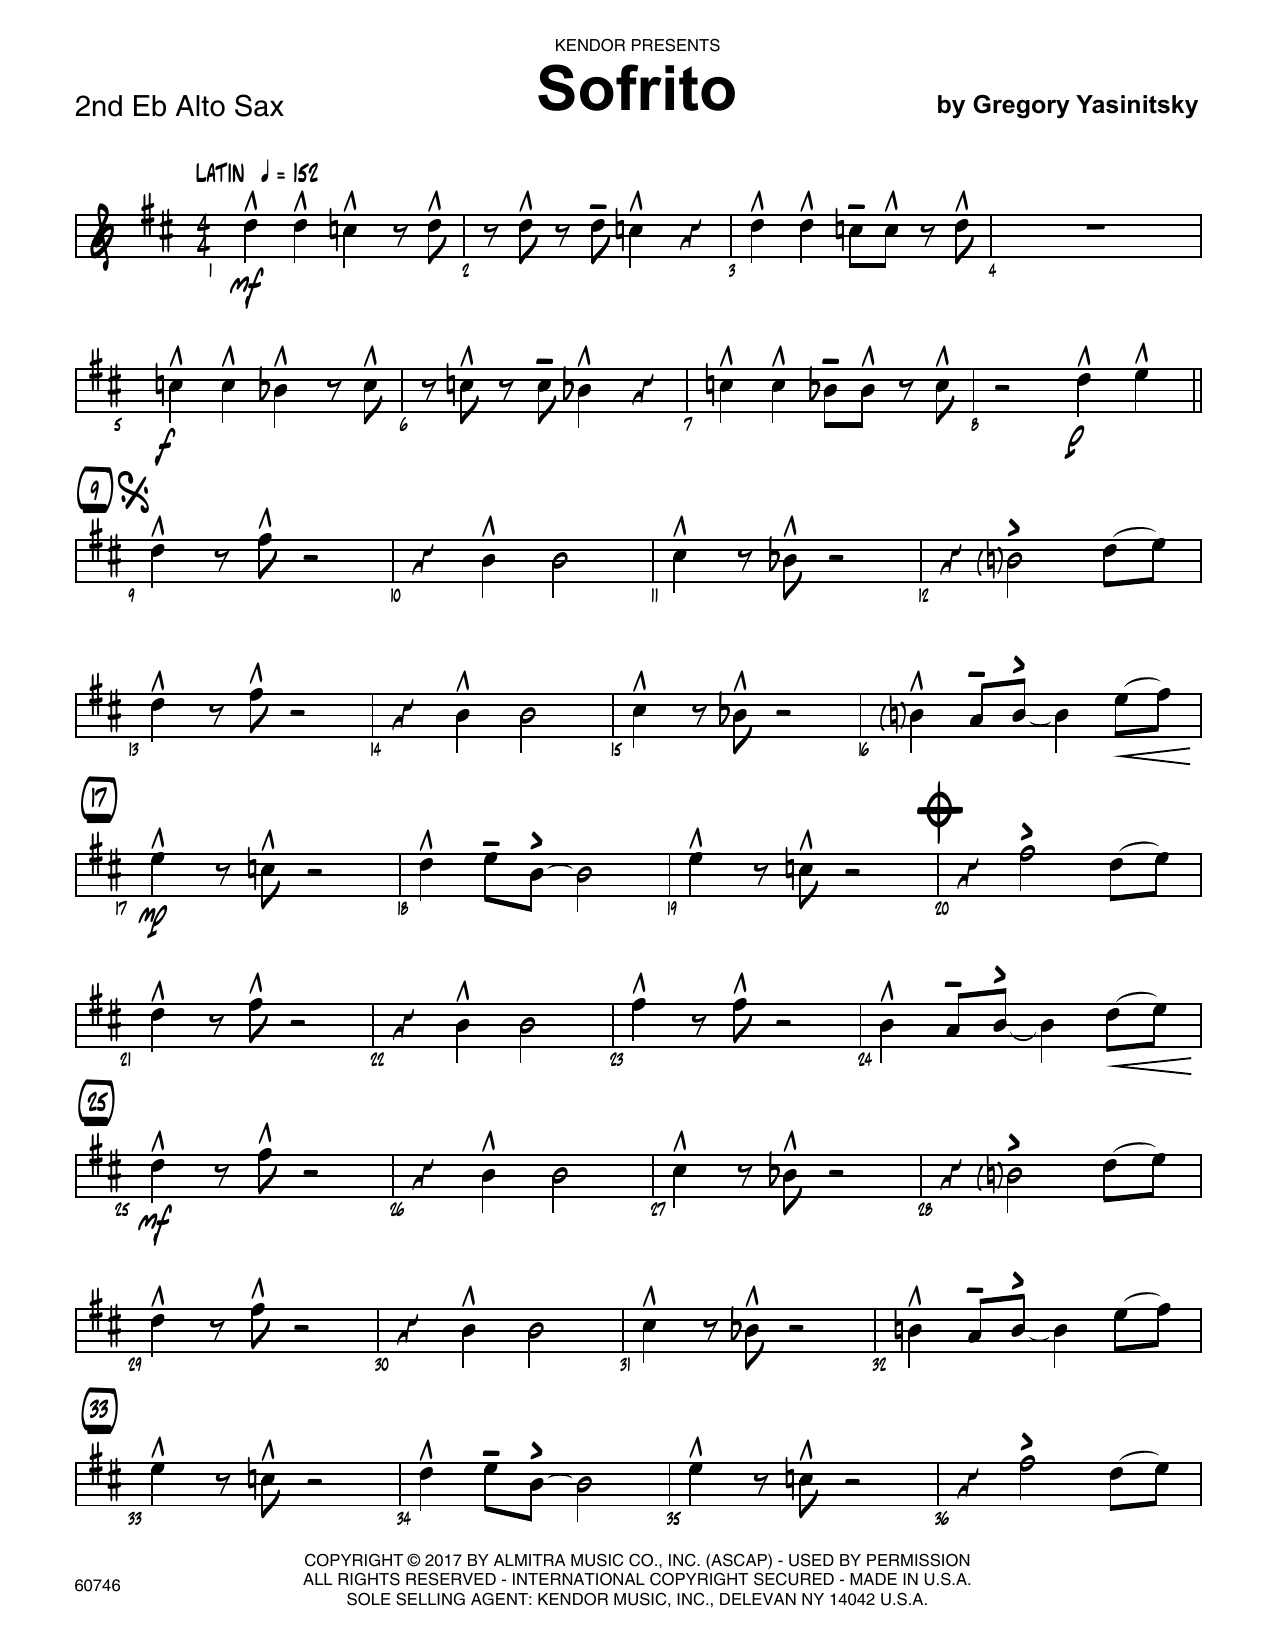 Sofrito - 2nd Eb Alto Saxophone Sheet Music